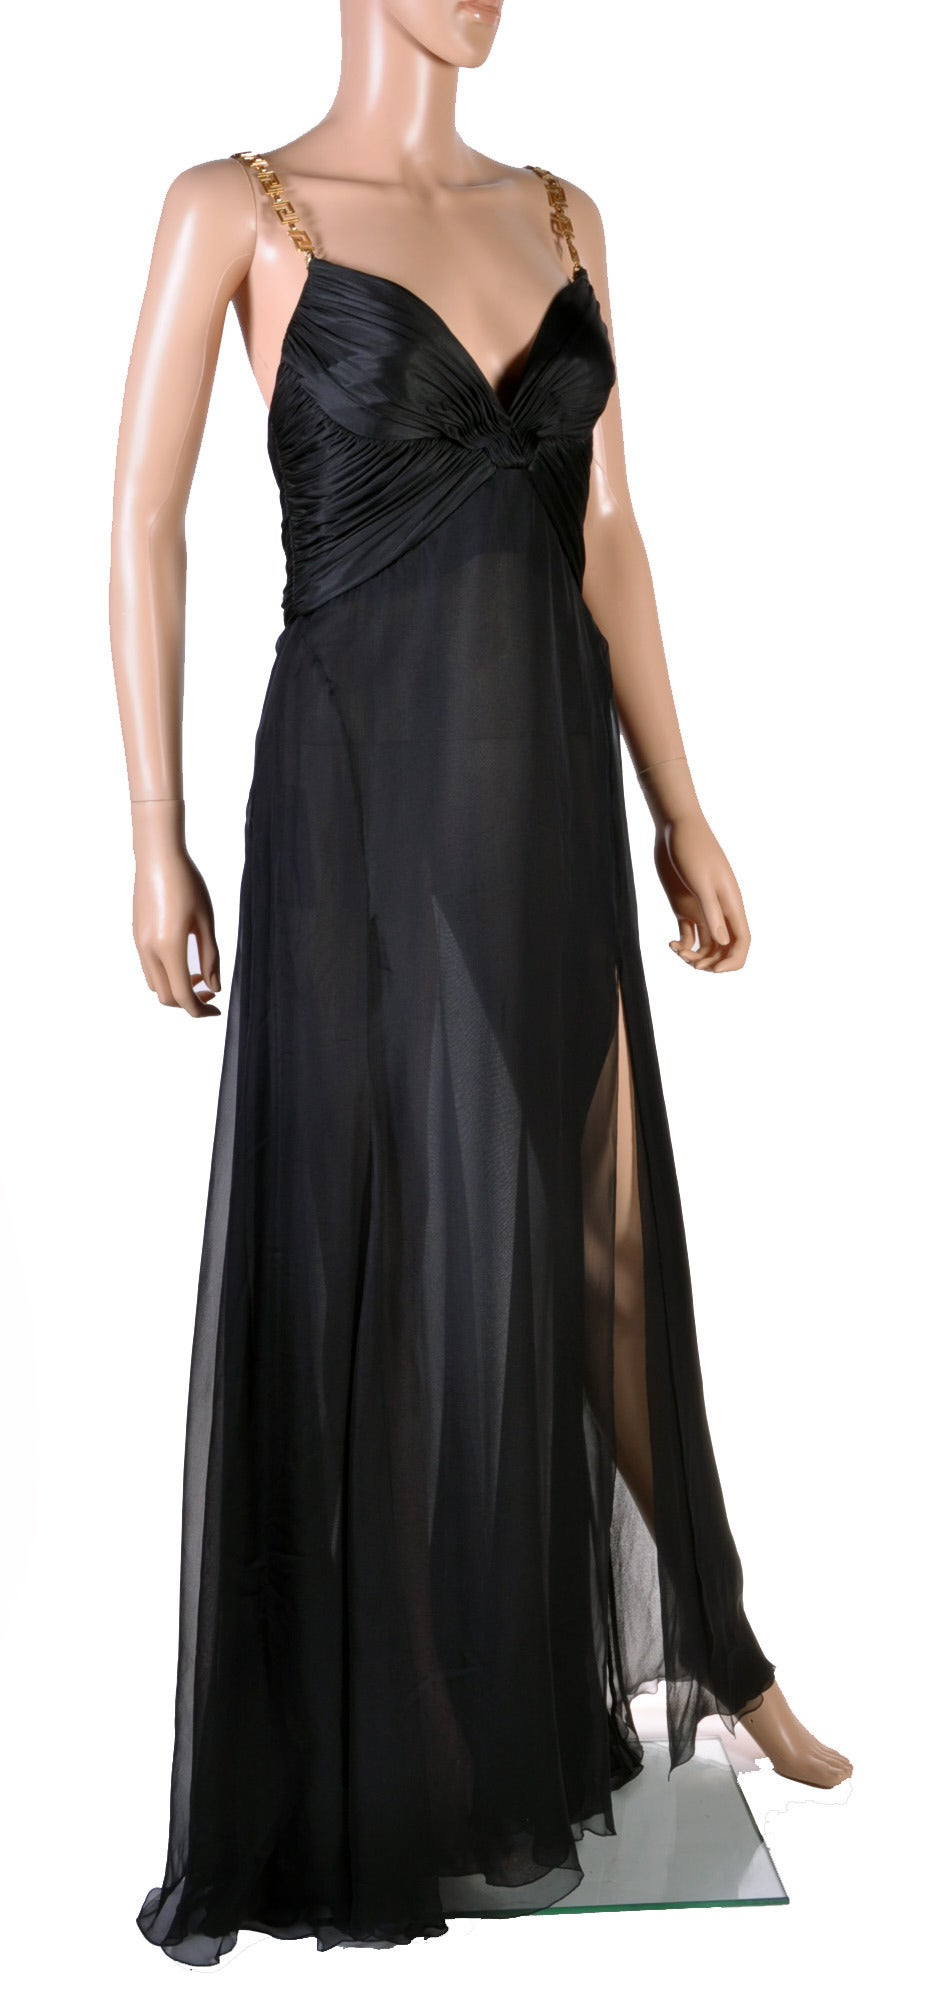 Beautiful Versace Black Silk Sheer Chiffon Gown with Golden Greek Key Straps. Size 46